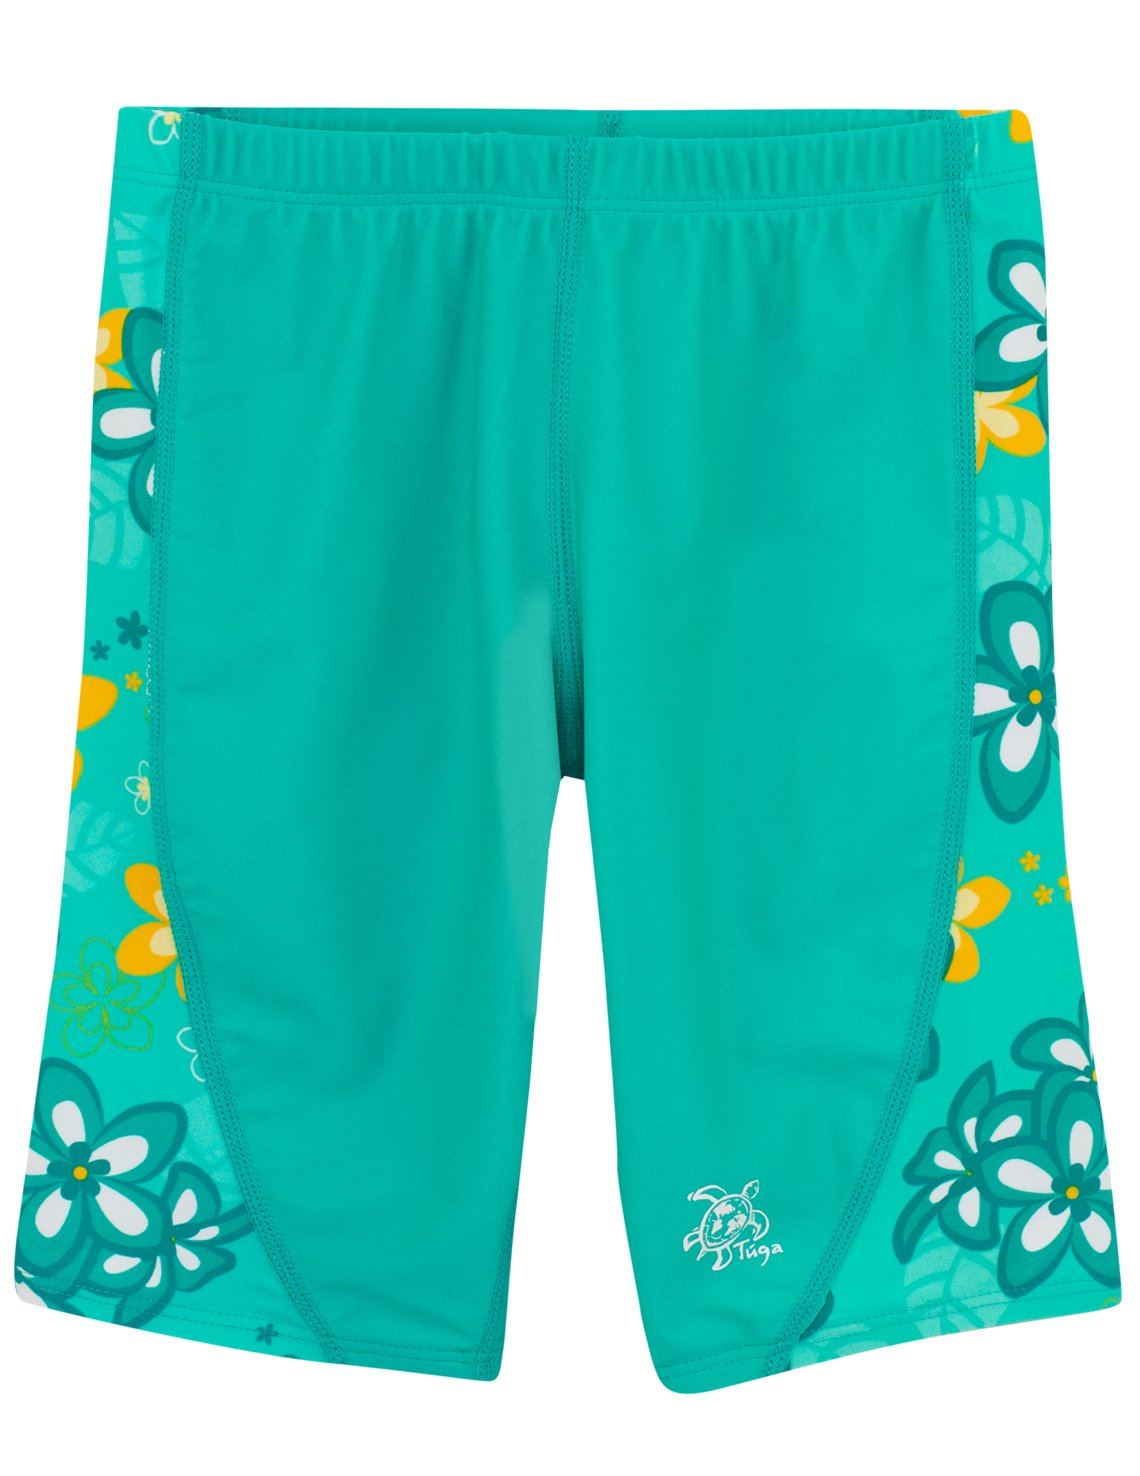 Tuga Girls Swim Jammer Short 2-14 Years, UPF 50+ Sun Protection Board Short Plangea